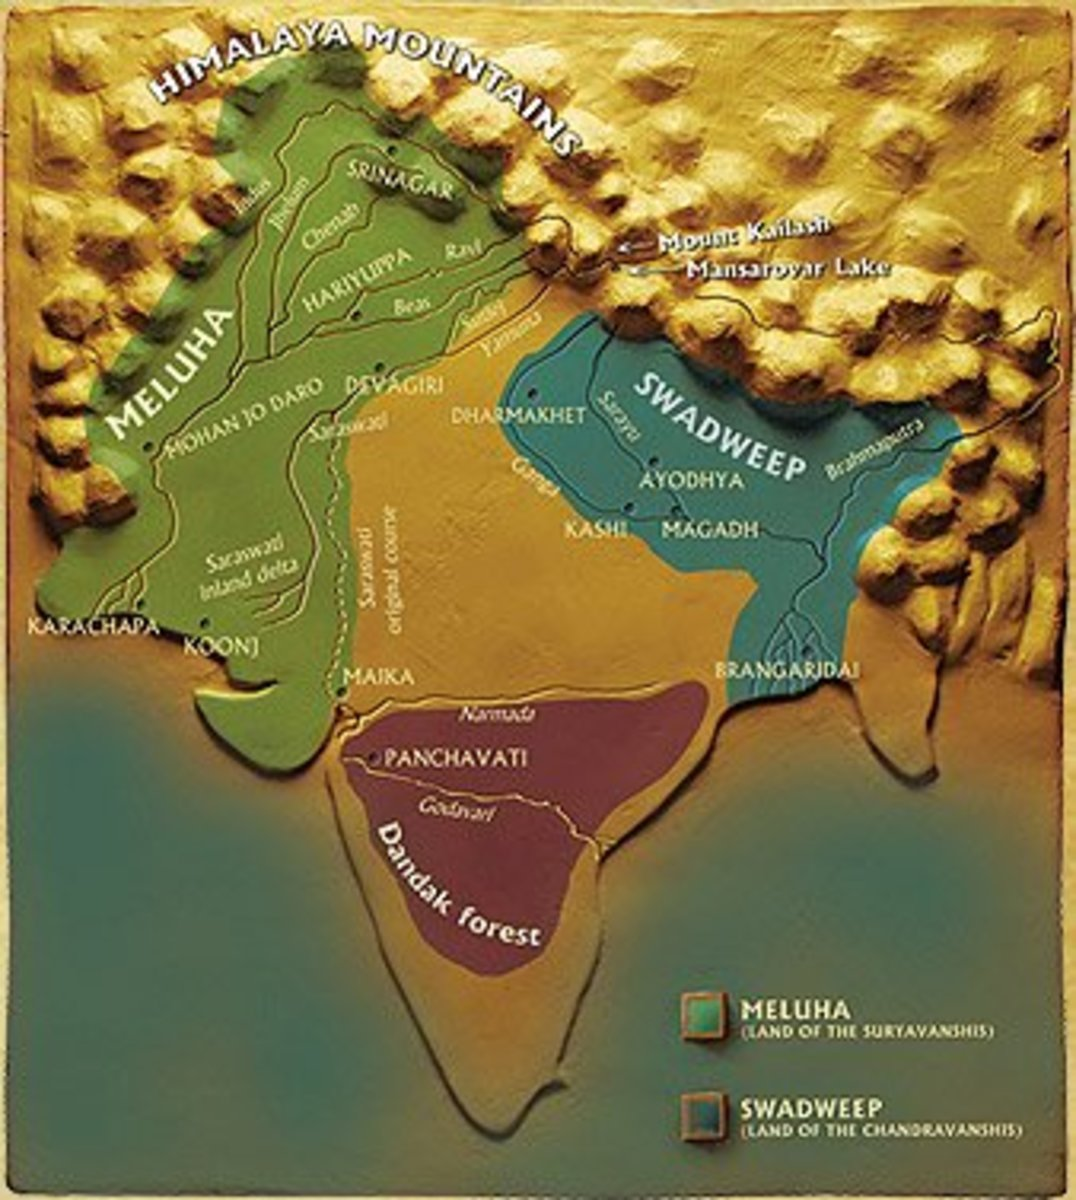 Map of Meluha and the other places depicted in the novel